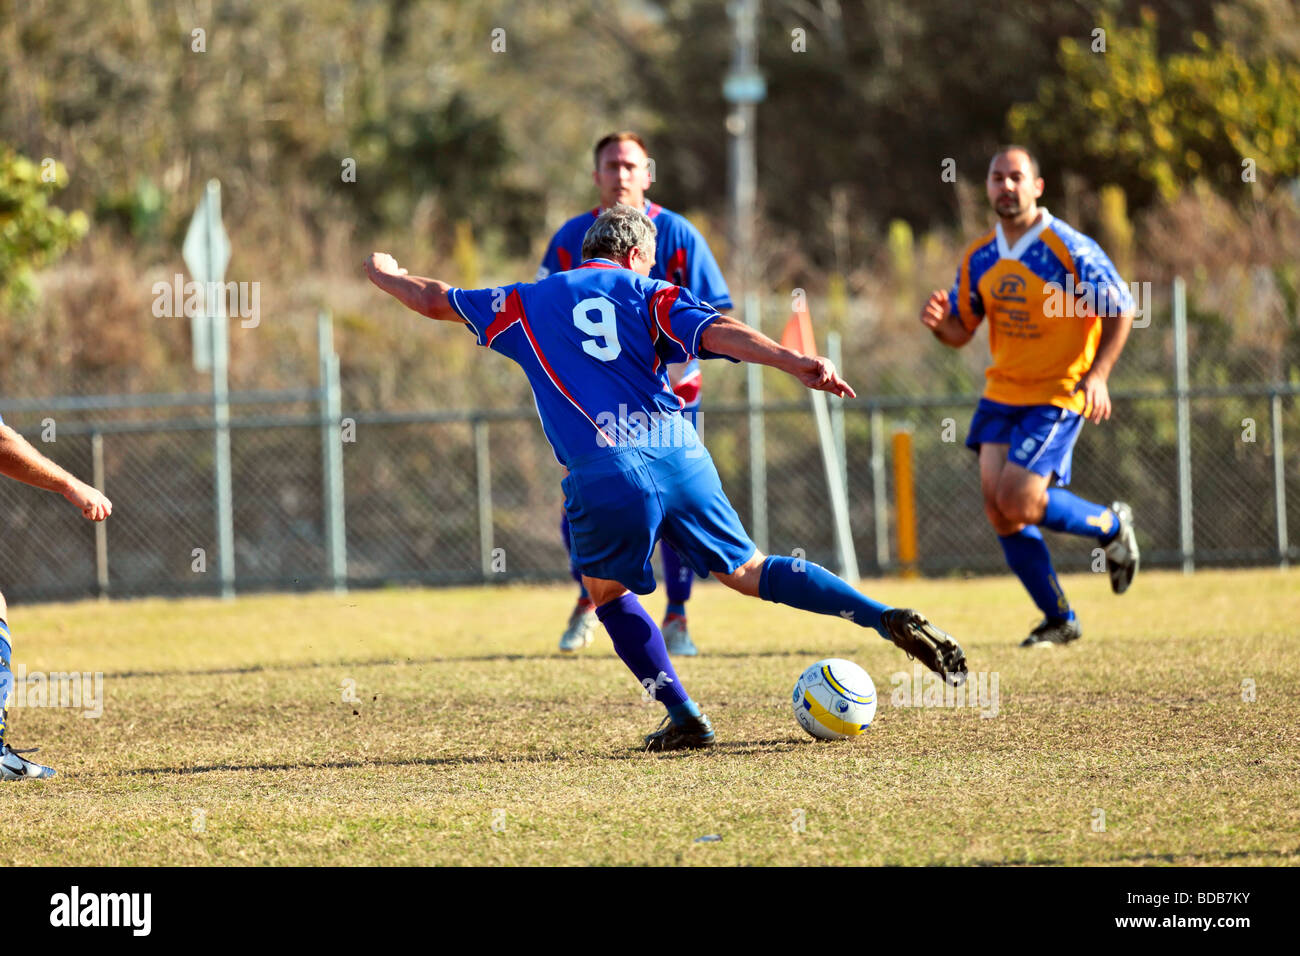 Two soccer teams playing a match heading the ball dribbling and kicking - Stock Image